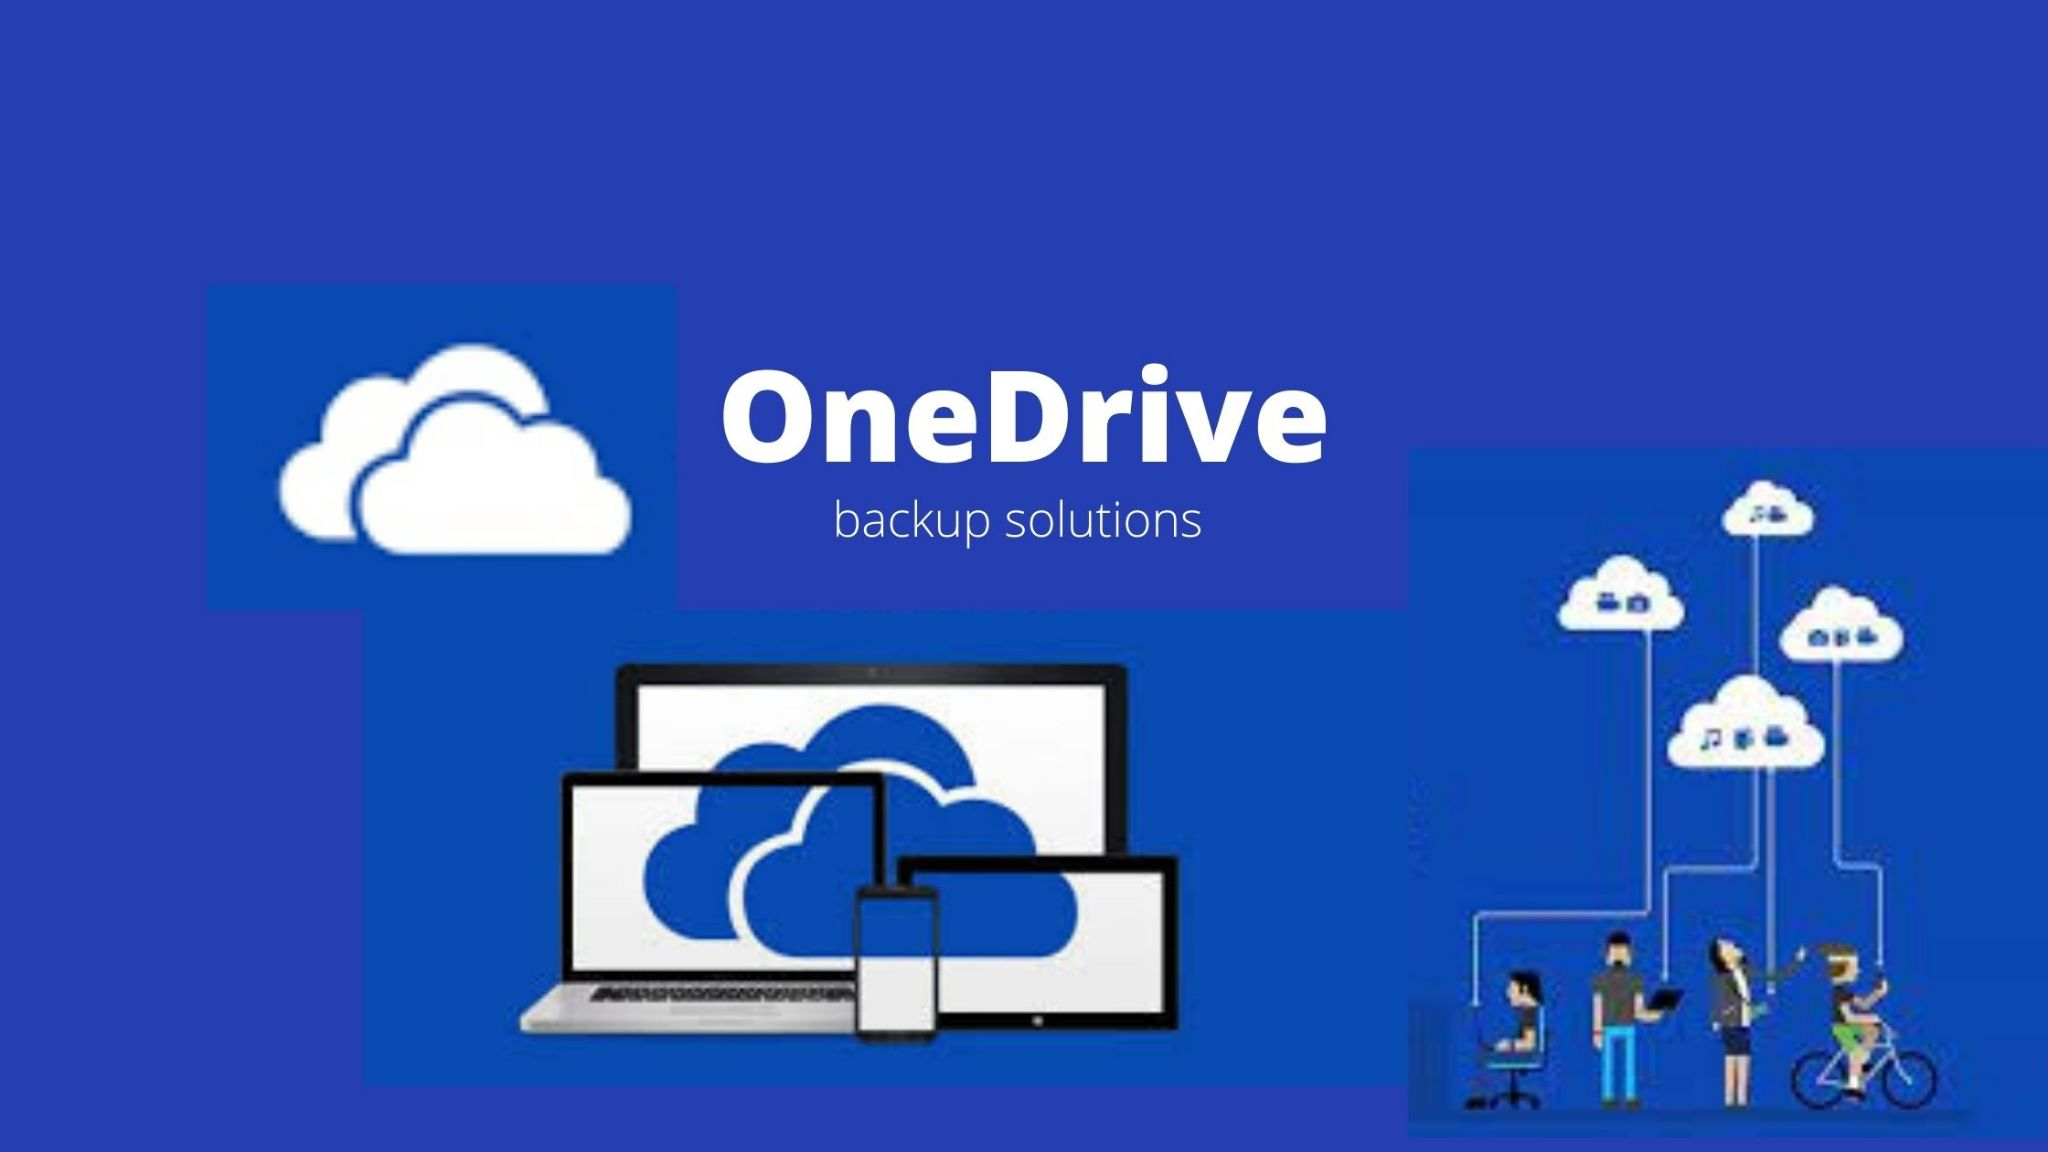 One drive - backup software